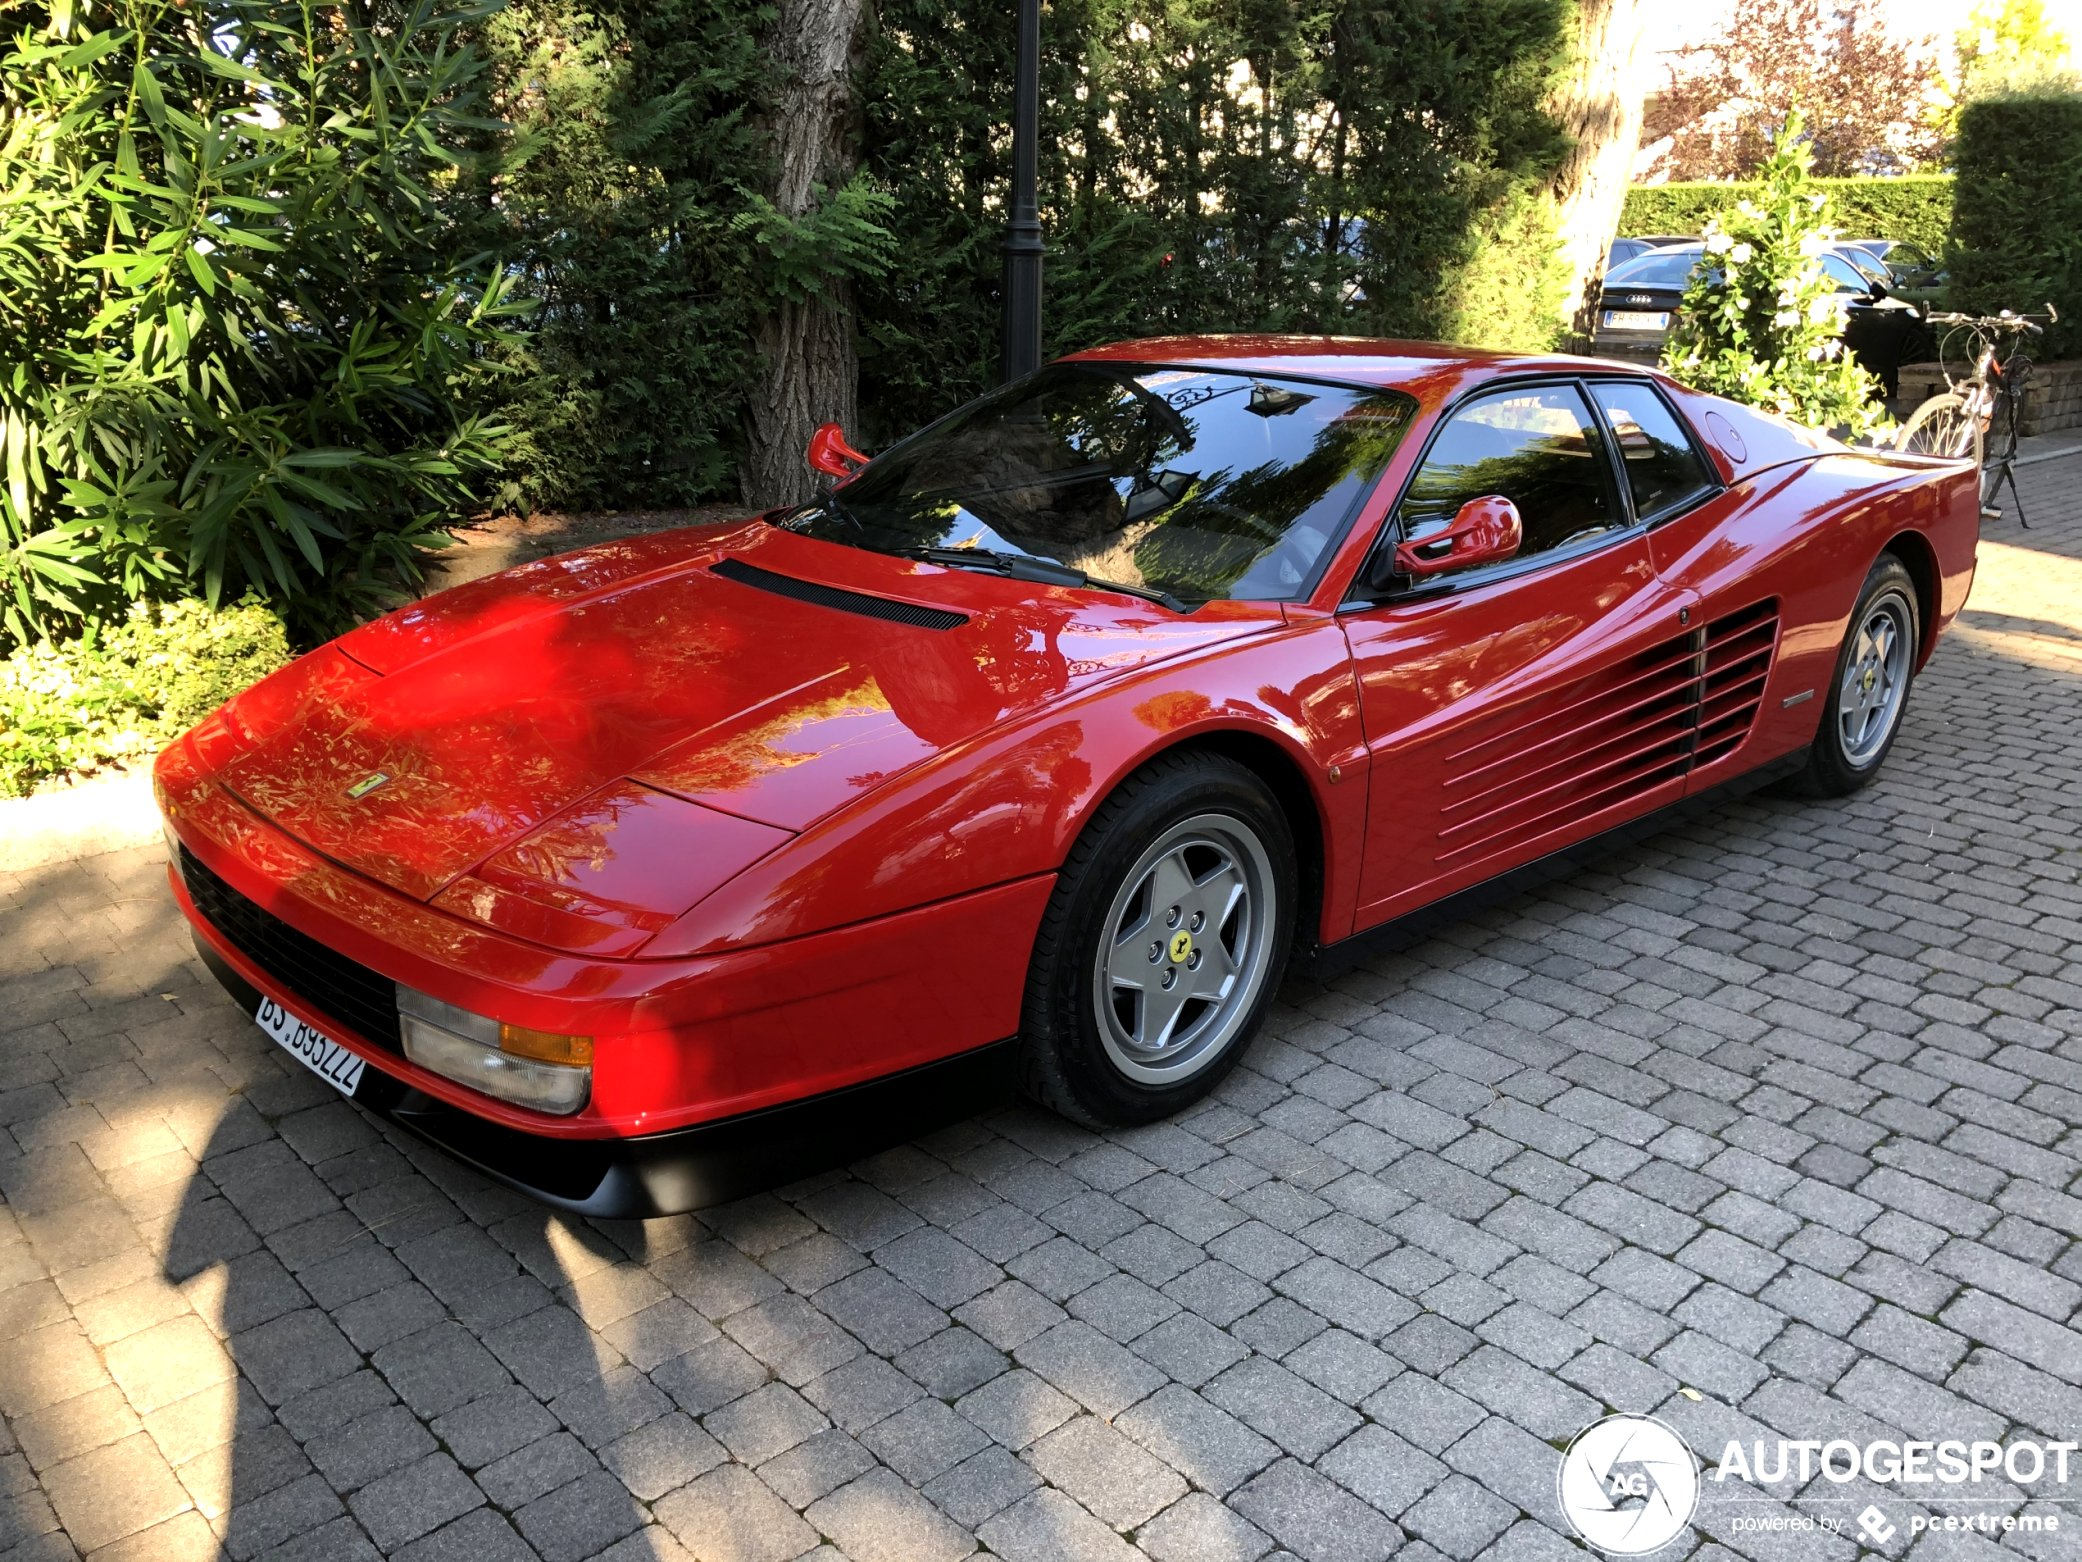 2020 ferrari testarossa Research New